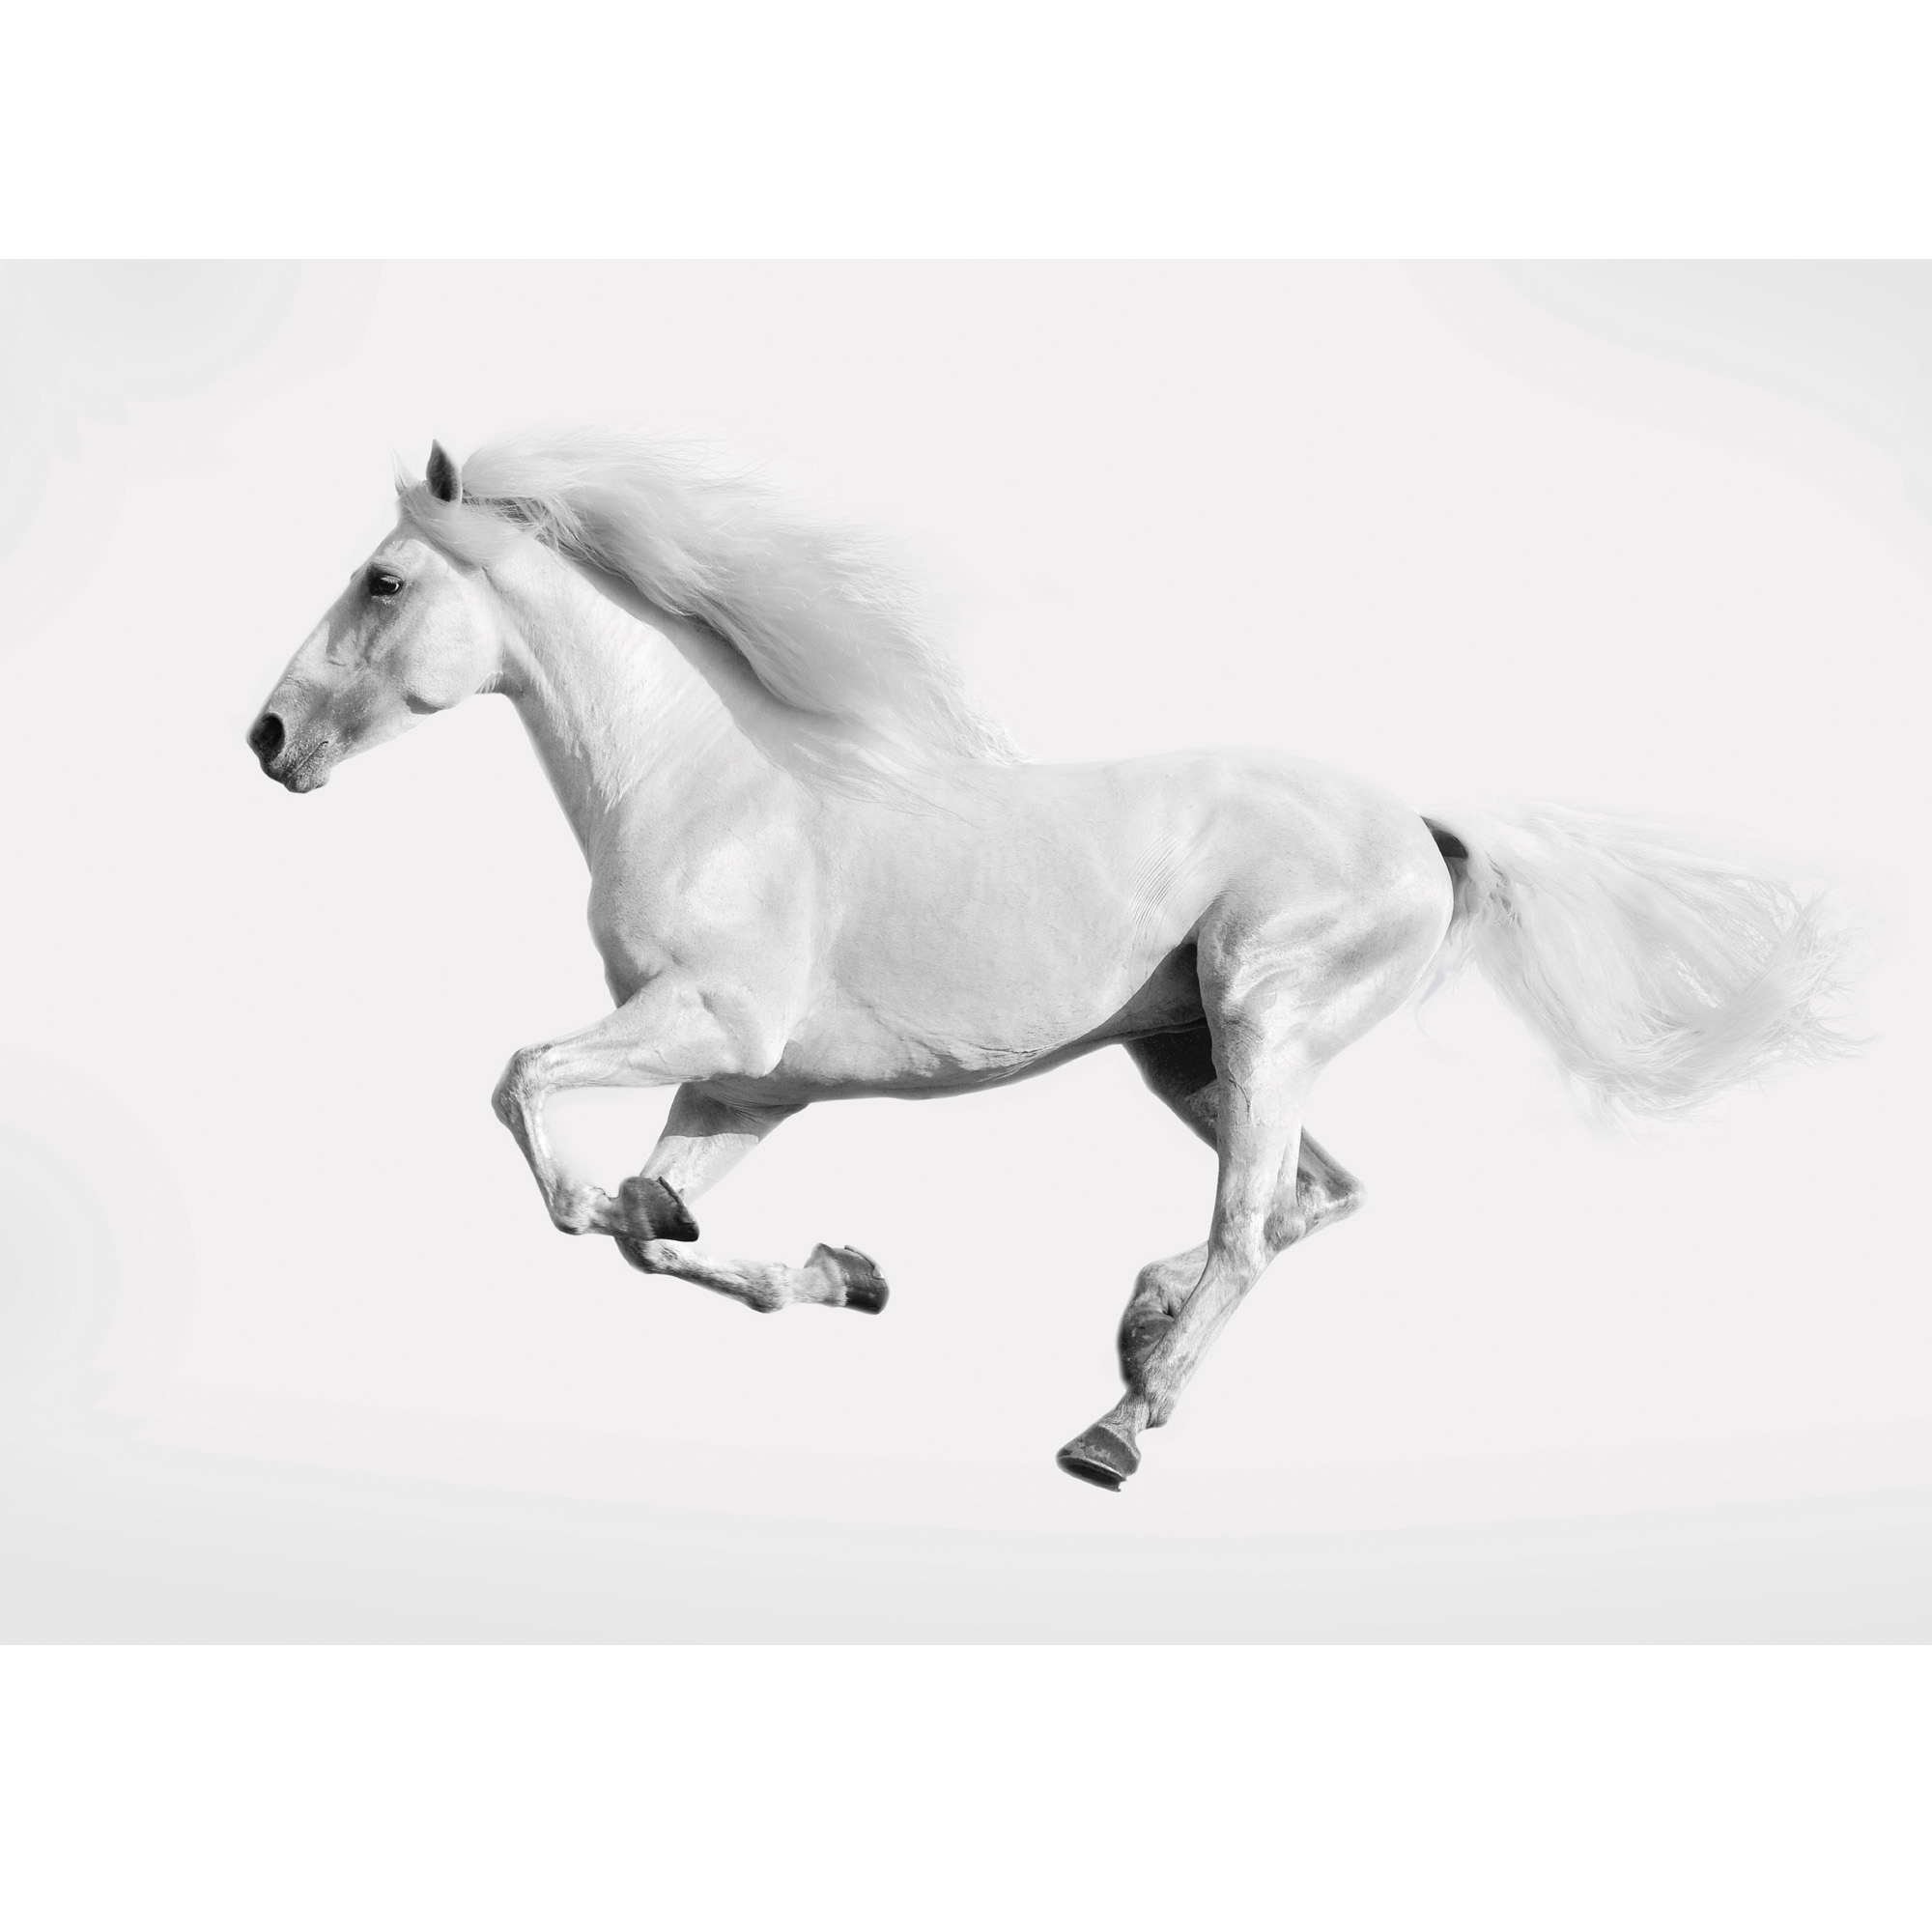 White Running Horse Glass Art Contemporary Art Homesdirect365